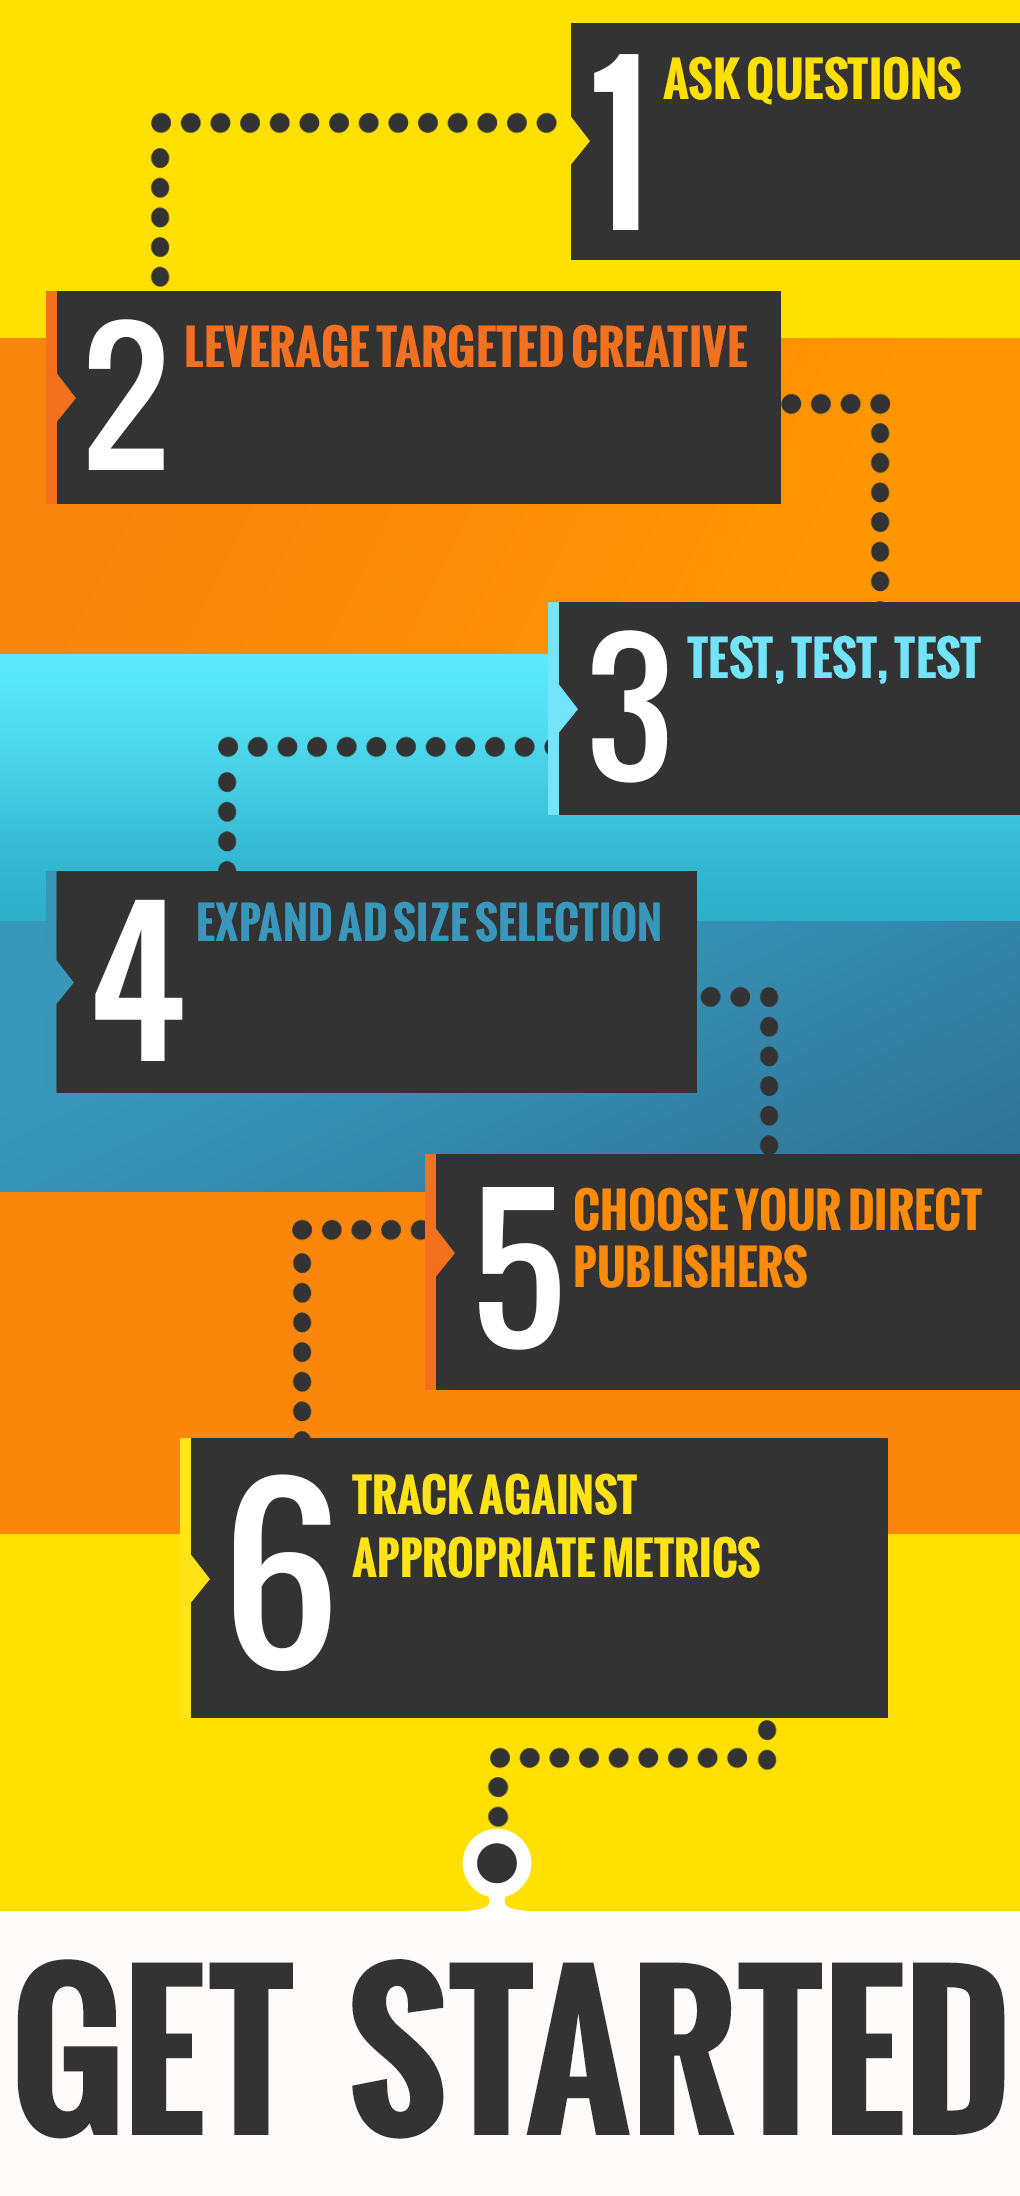 AdReady has created a simple six-step process that